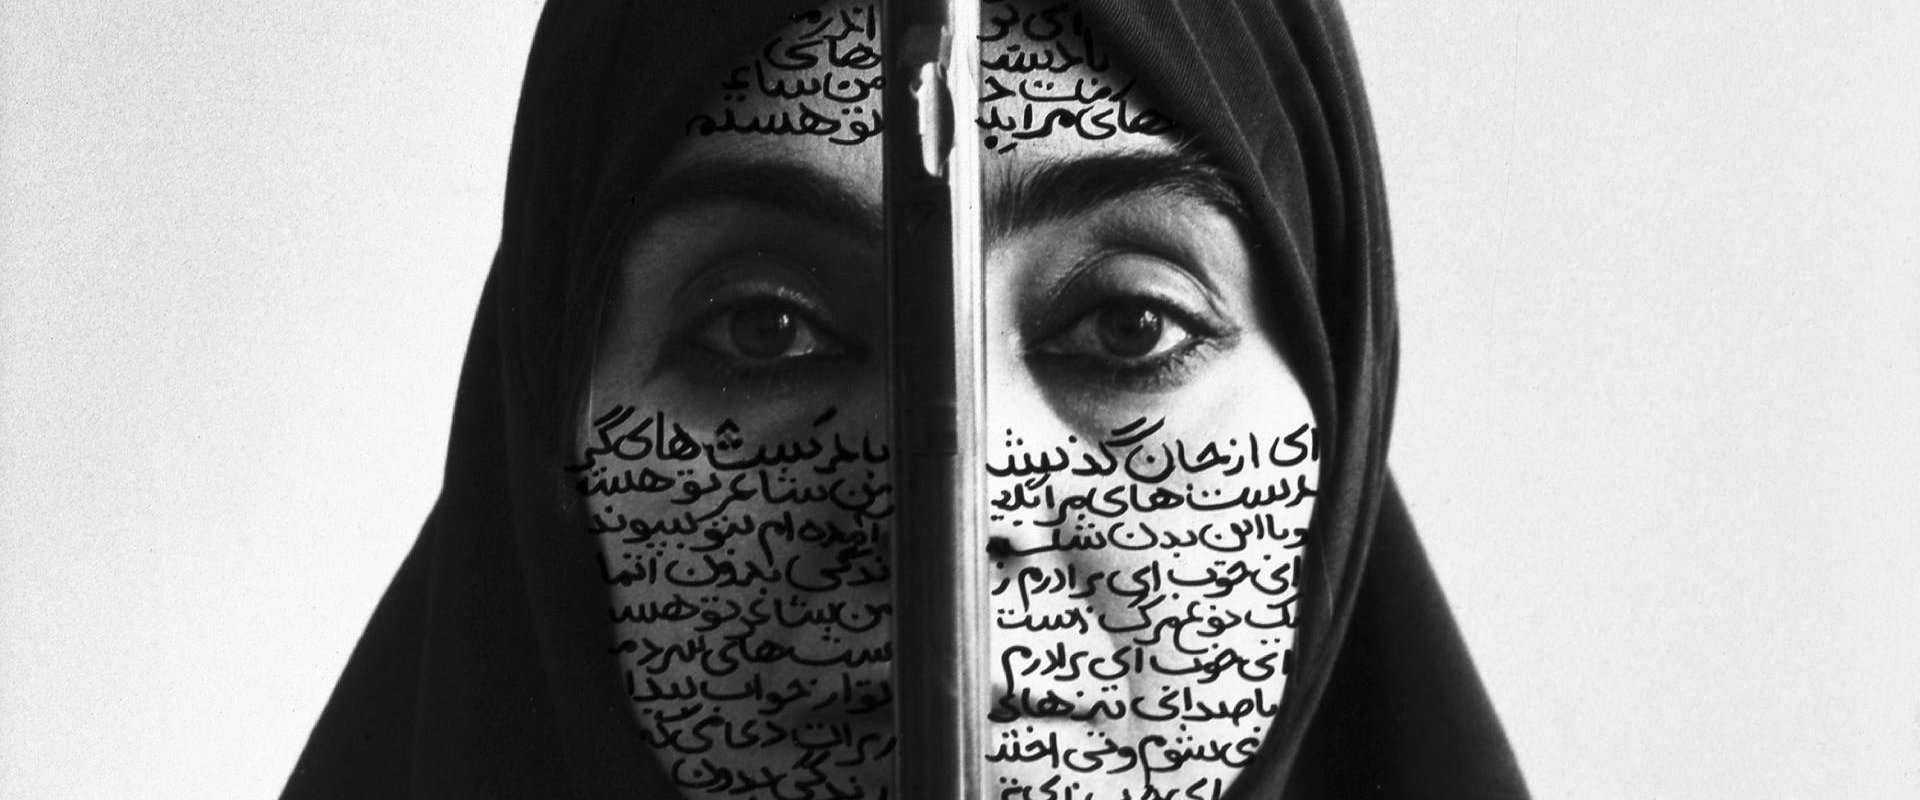 woman with writing on her face wearing black headscarf